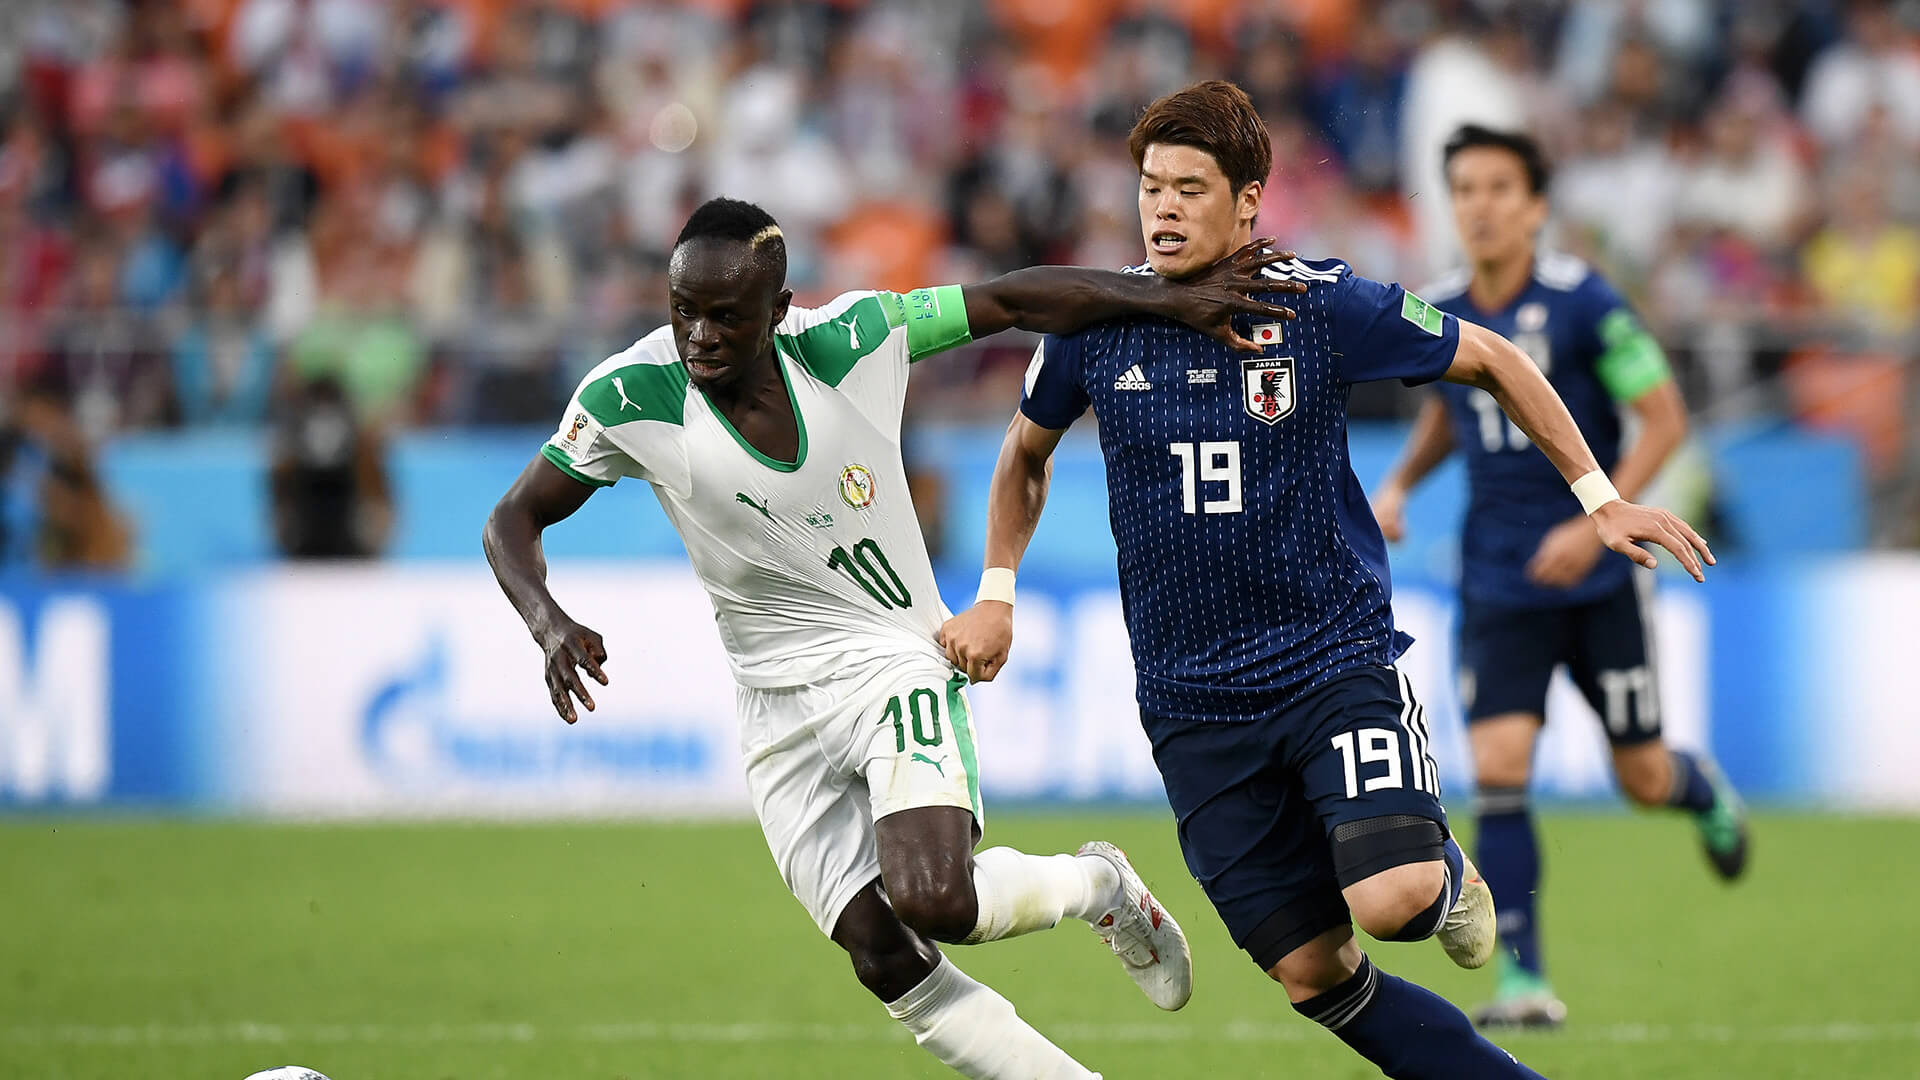 FIFA must surely change their 'Fair Play' tiebreaker, which unfortunately eliminated a brave Senegalese side that played well at the World Cup 2018.